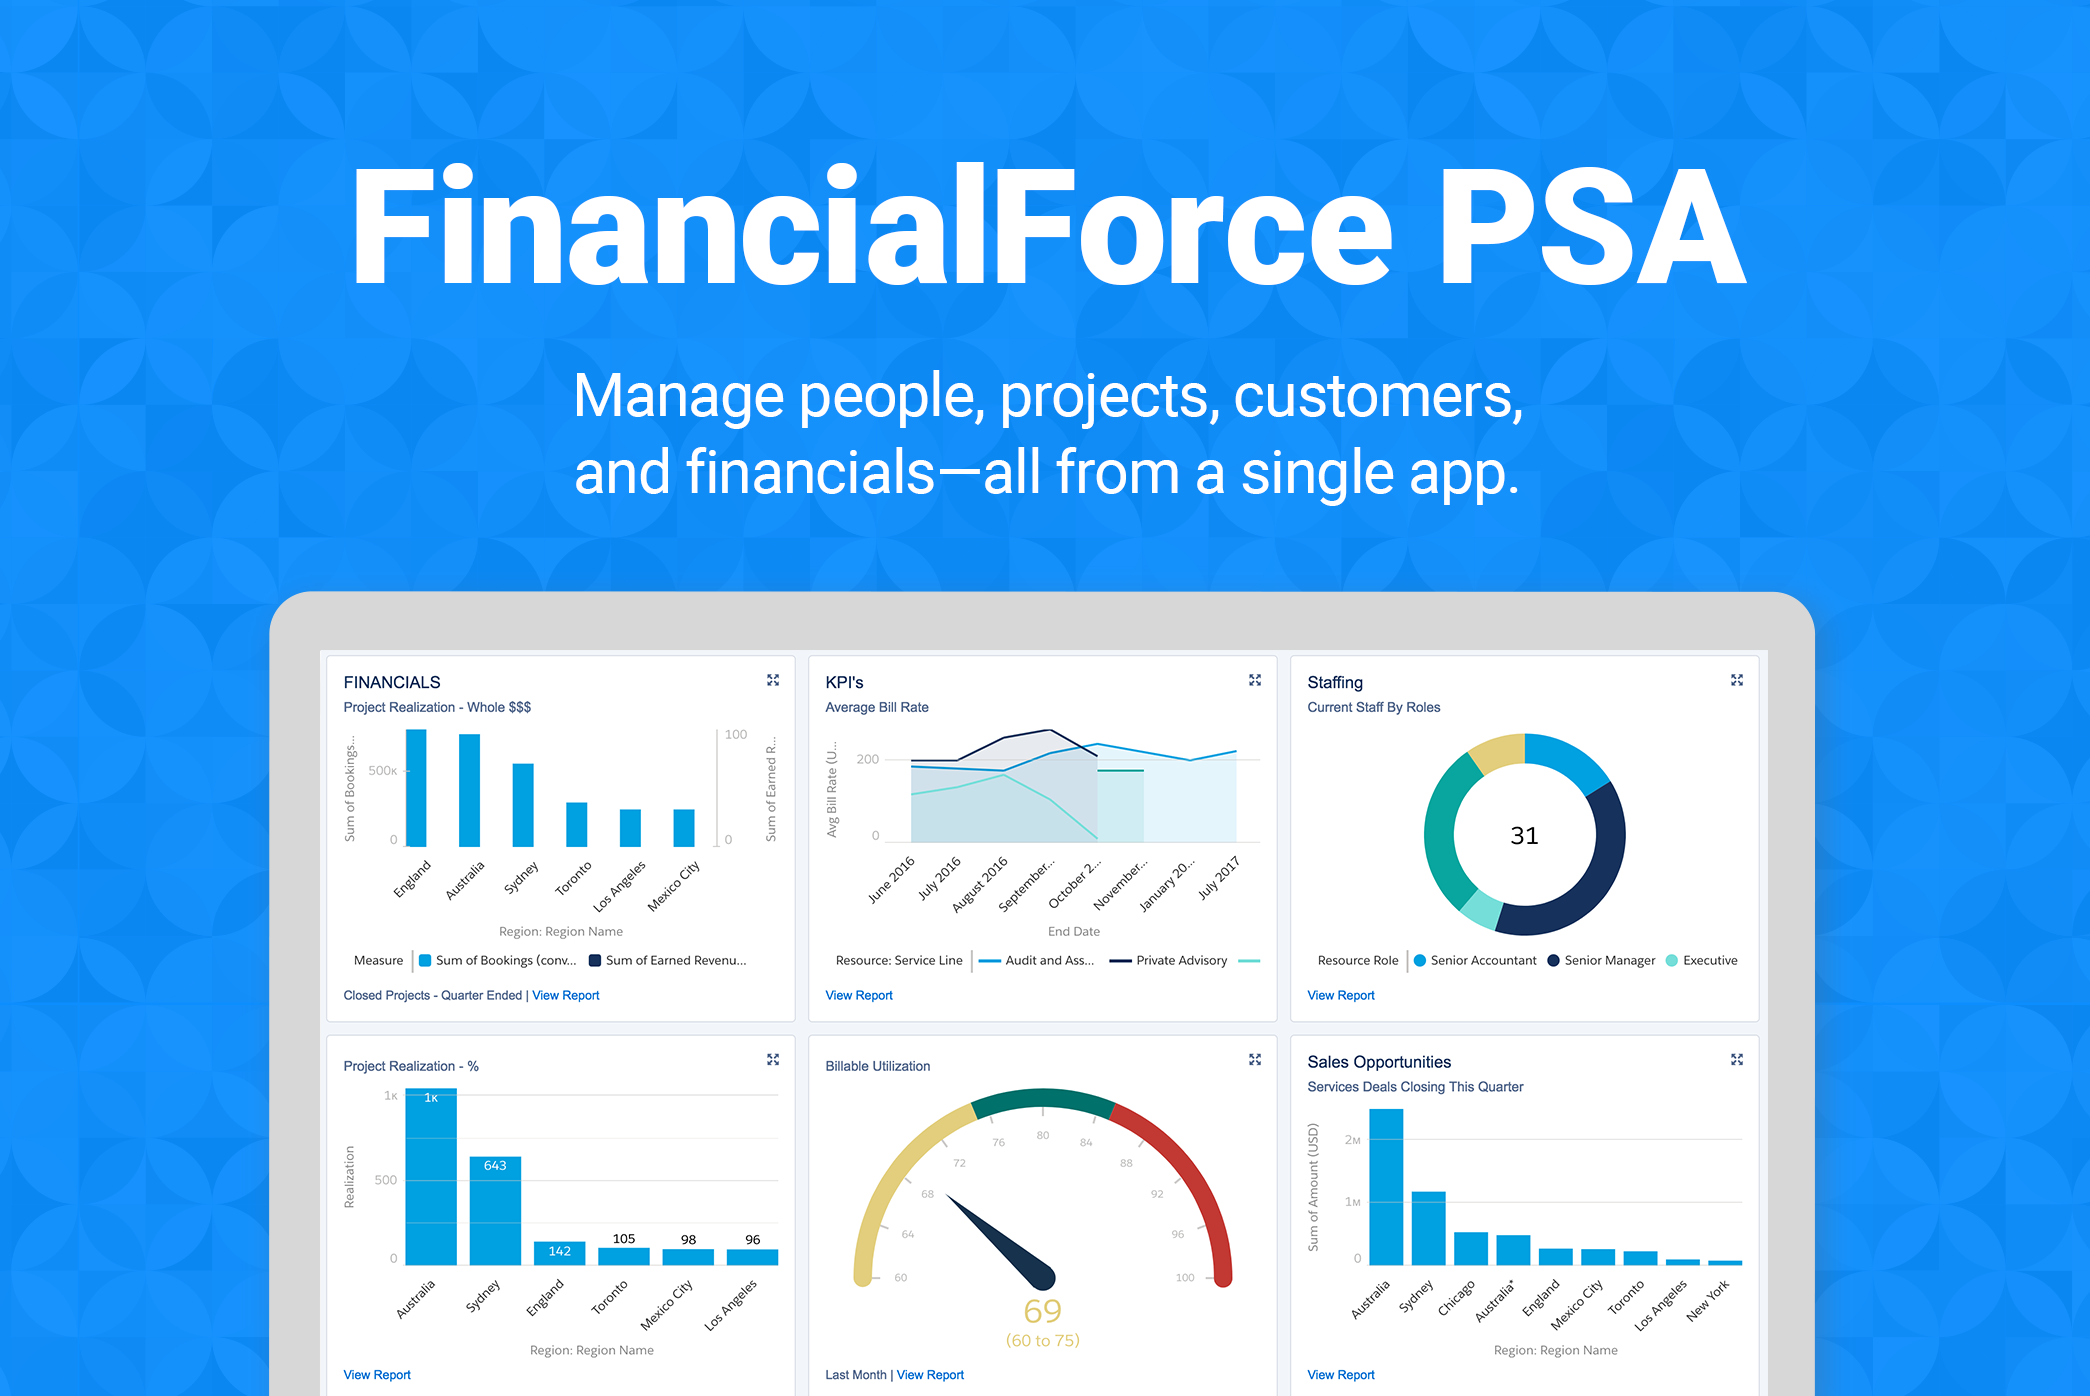 FinancialForce PSA screenshot: The leading PSA solution on the Salesforce Platform